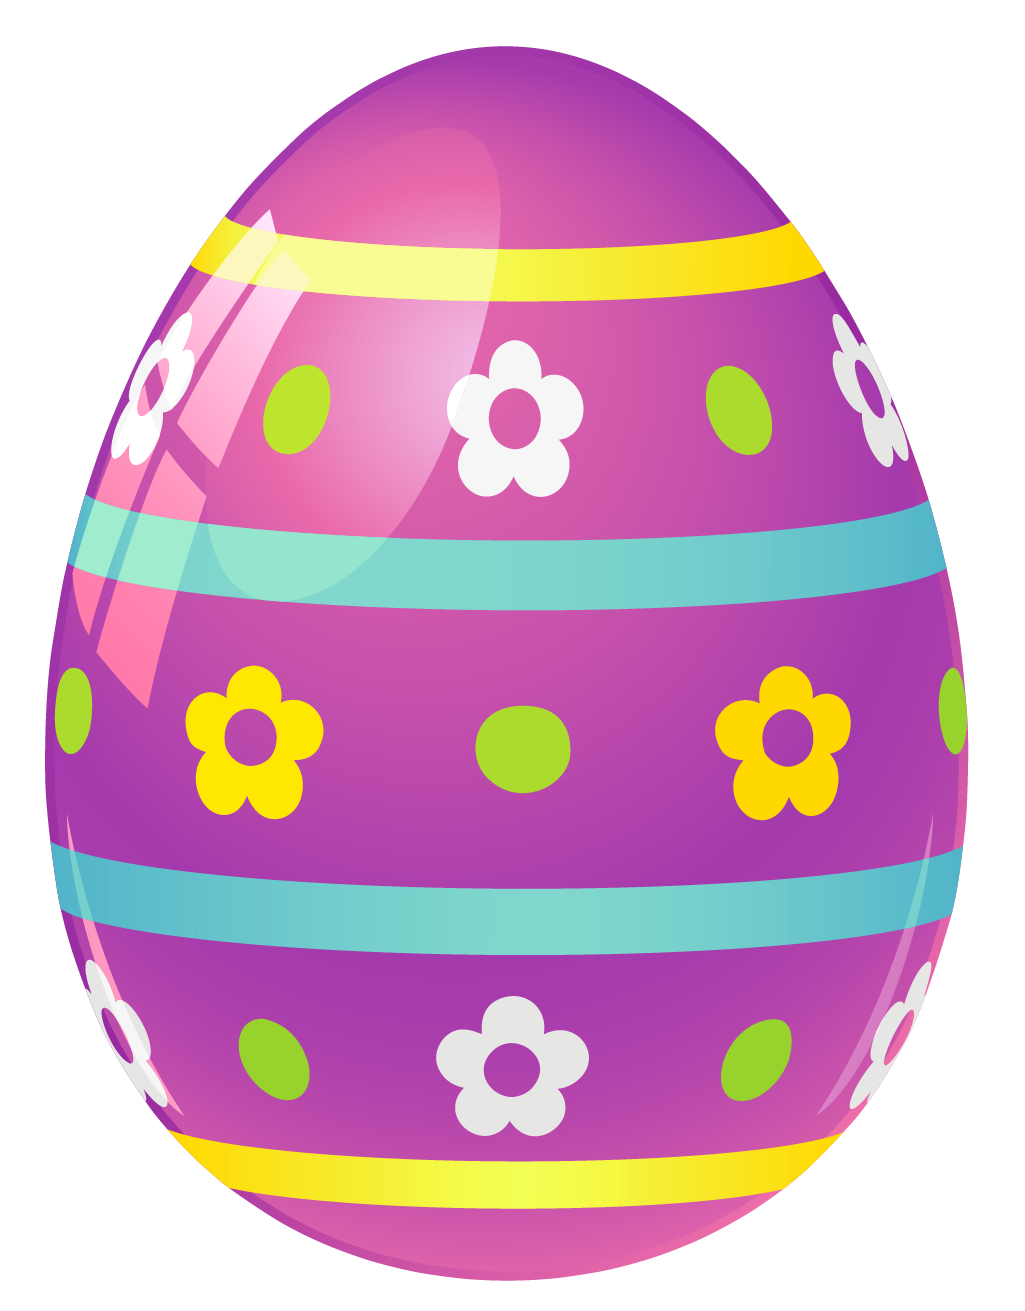 Easter egg clip art png. Purple with flowers picture